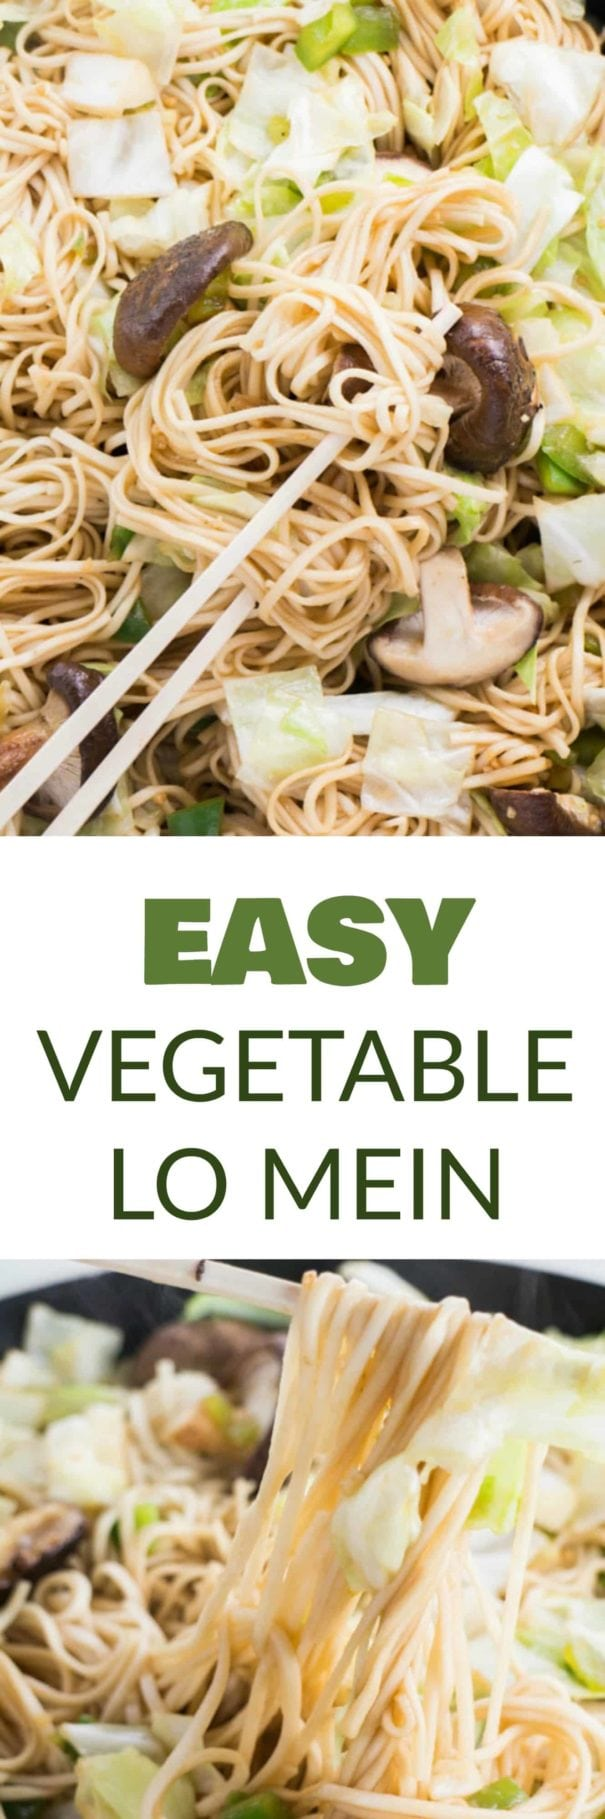 10 MINUTE, EASY Vegetable Lo Mein! This simple recipe uses dry lo mein noodles and lots of vegetables to make a healthy dish that tastes just like your favorite Chinese restaurant! I love that the authentic sauce is made with basic pantry ingredients!